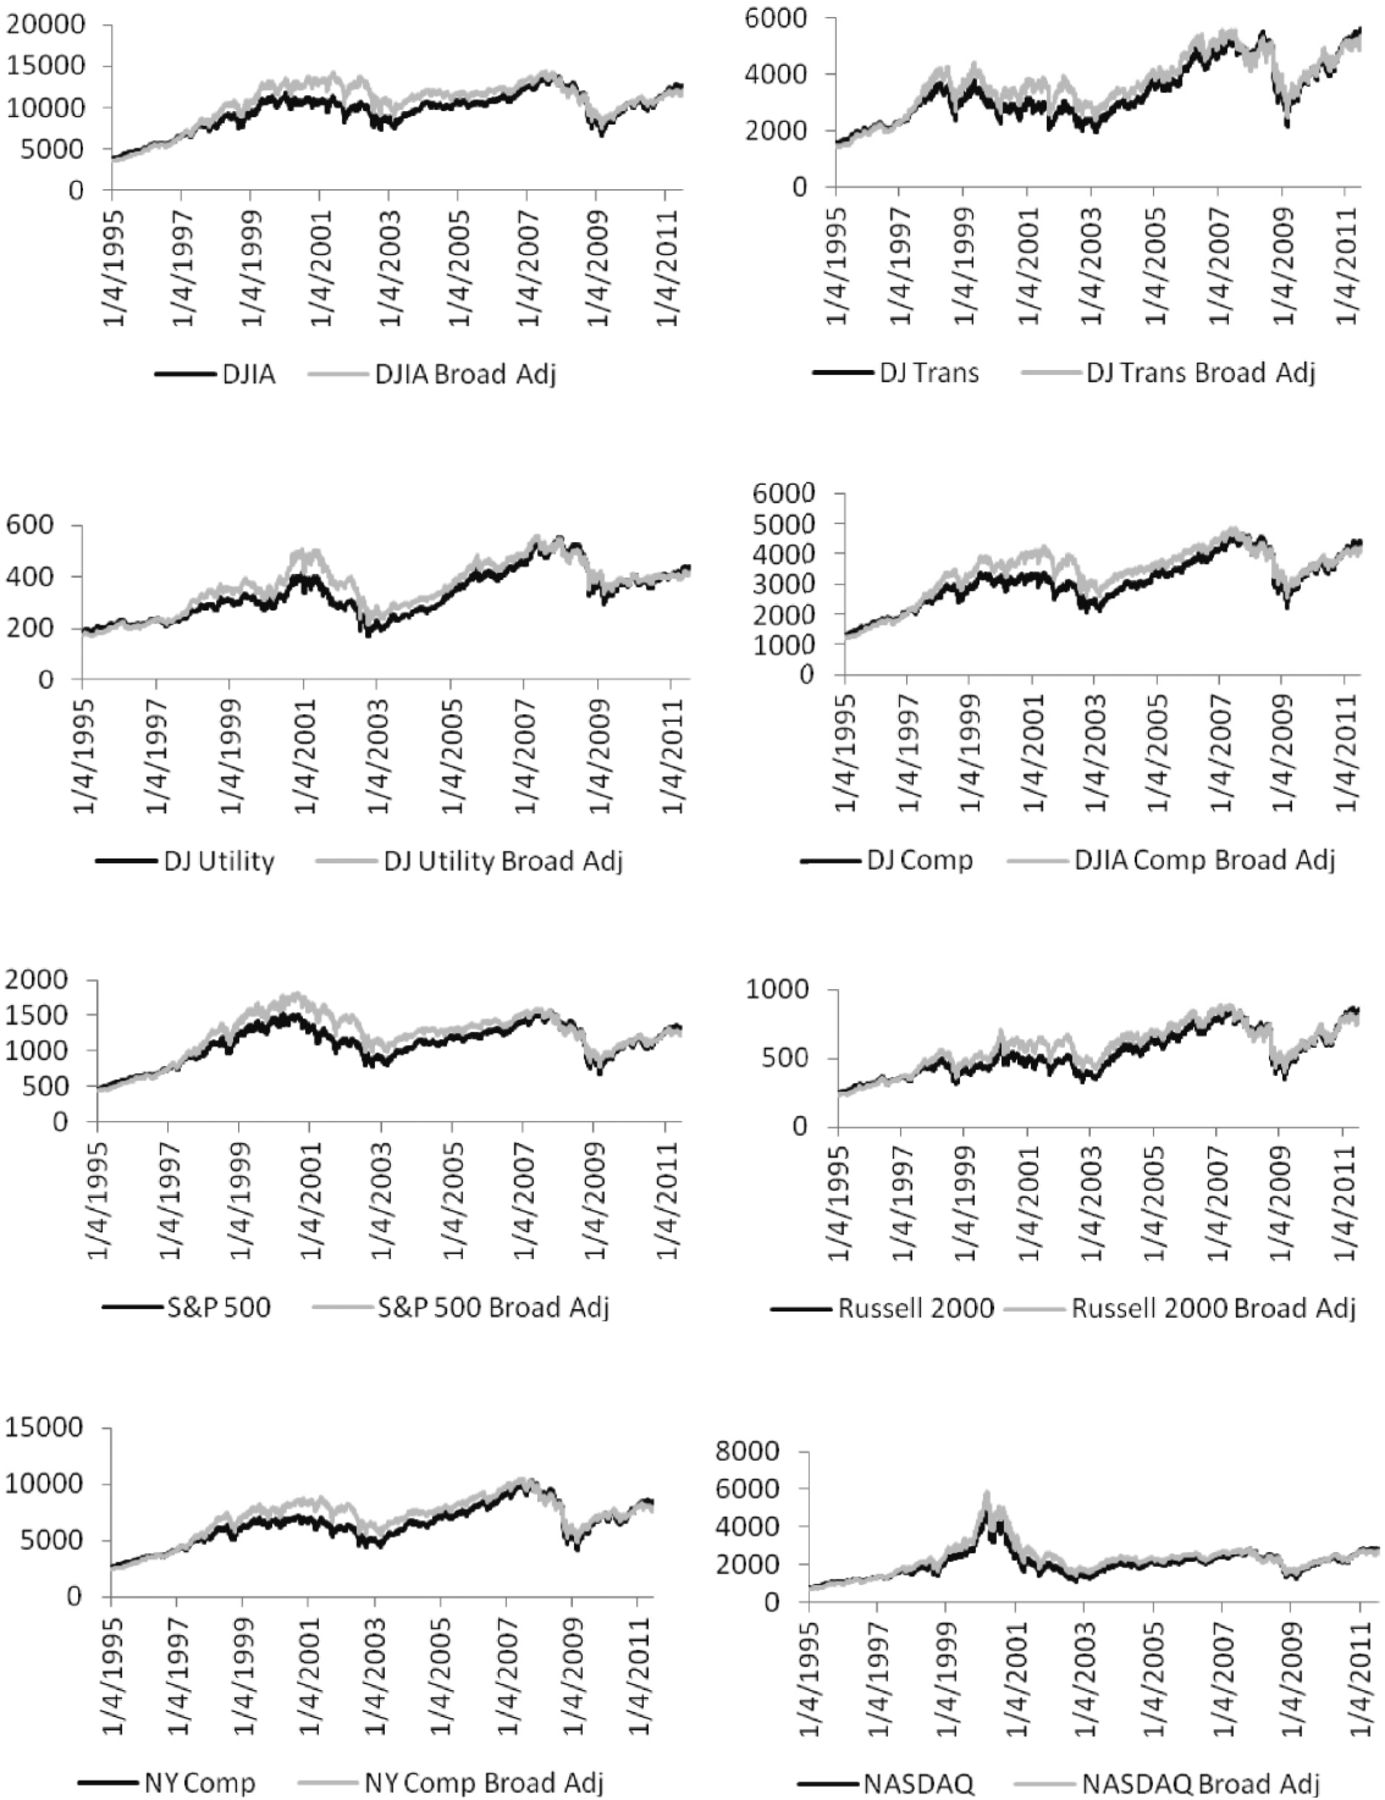 The Performance of Currency Value-Adjusted Stock Indices